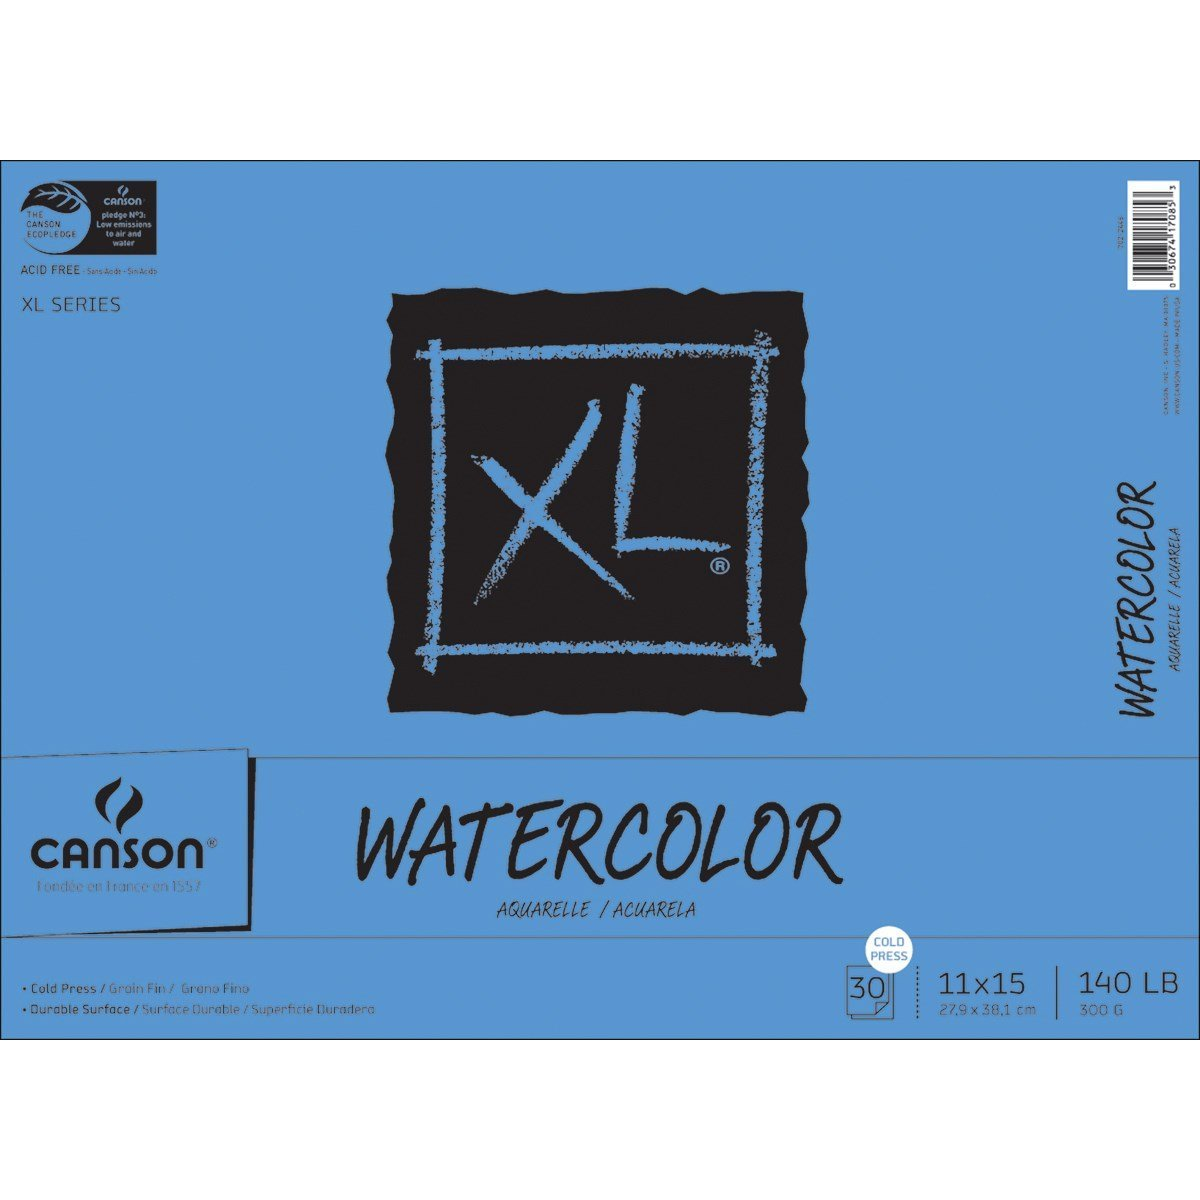 Canson XL Series Newsprint Paper Pad 9 x 12 Inch Fold Over 30 Pound 100 Sheets for Charcoal and Pencil